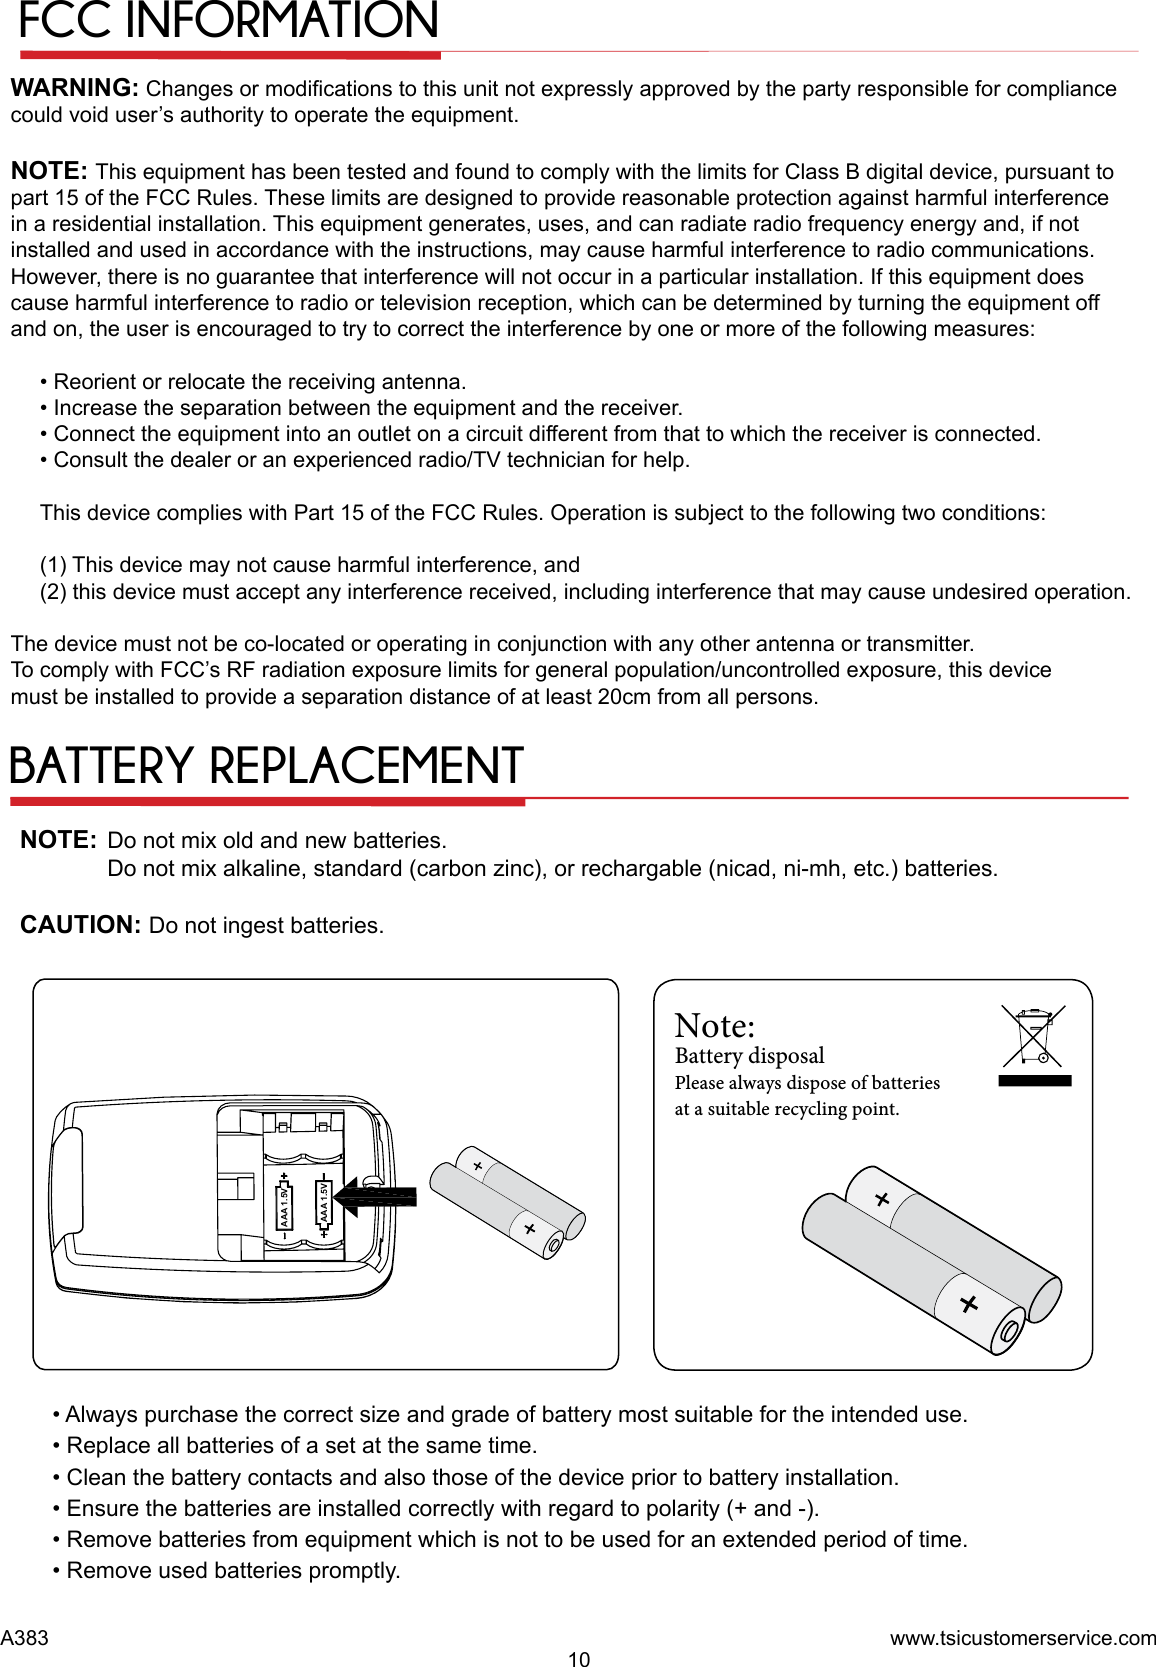 Discovery2 Co Uk Twin Battery Manual Guide